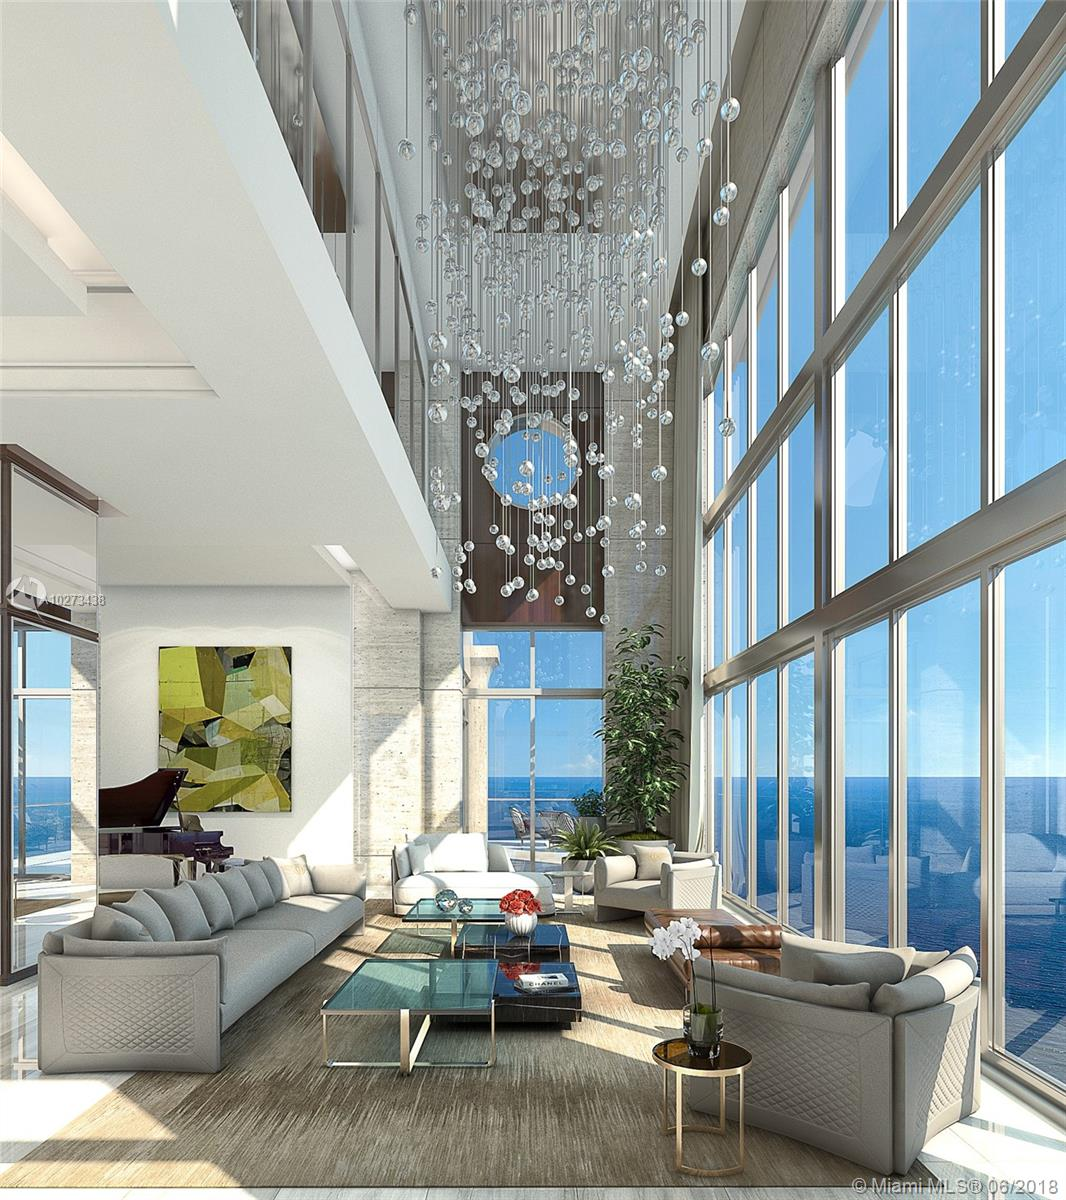 17749 COLLINS AVE #PH47 Property Photo - Sunny Isles Beach, FL real estate listing